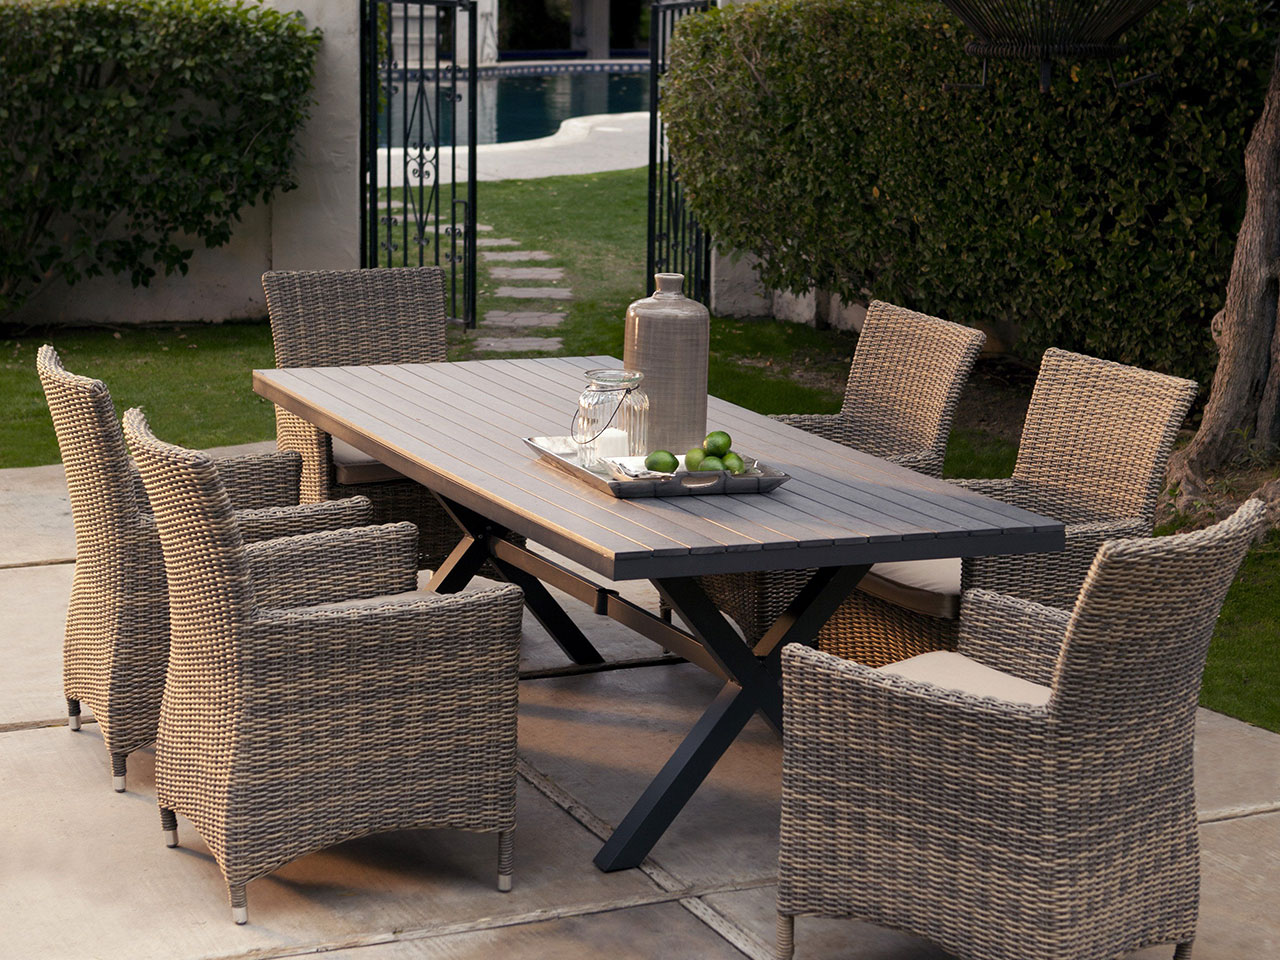 Patio Furniture – How to Find Comfort and Beauty